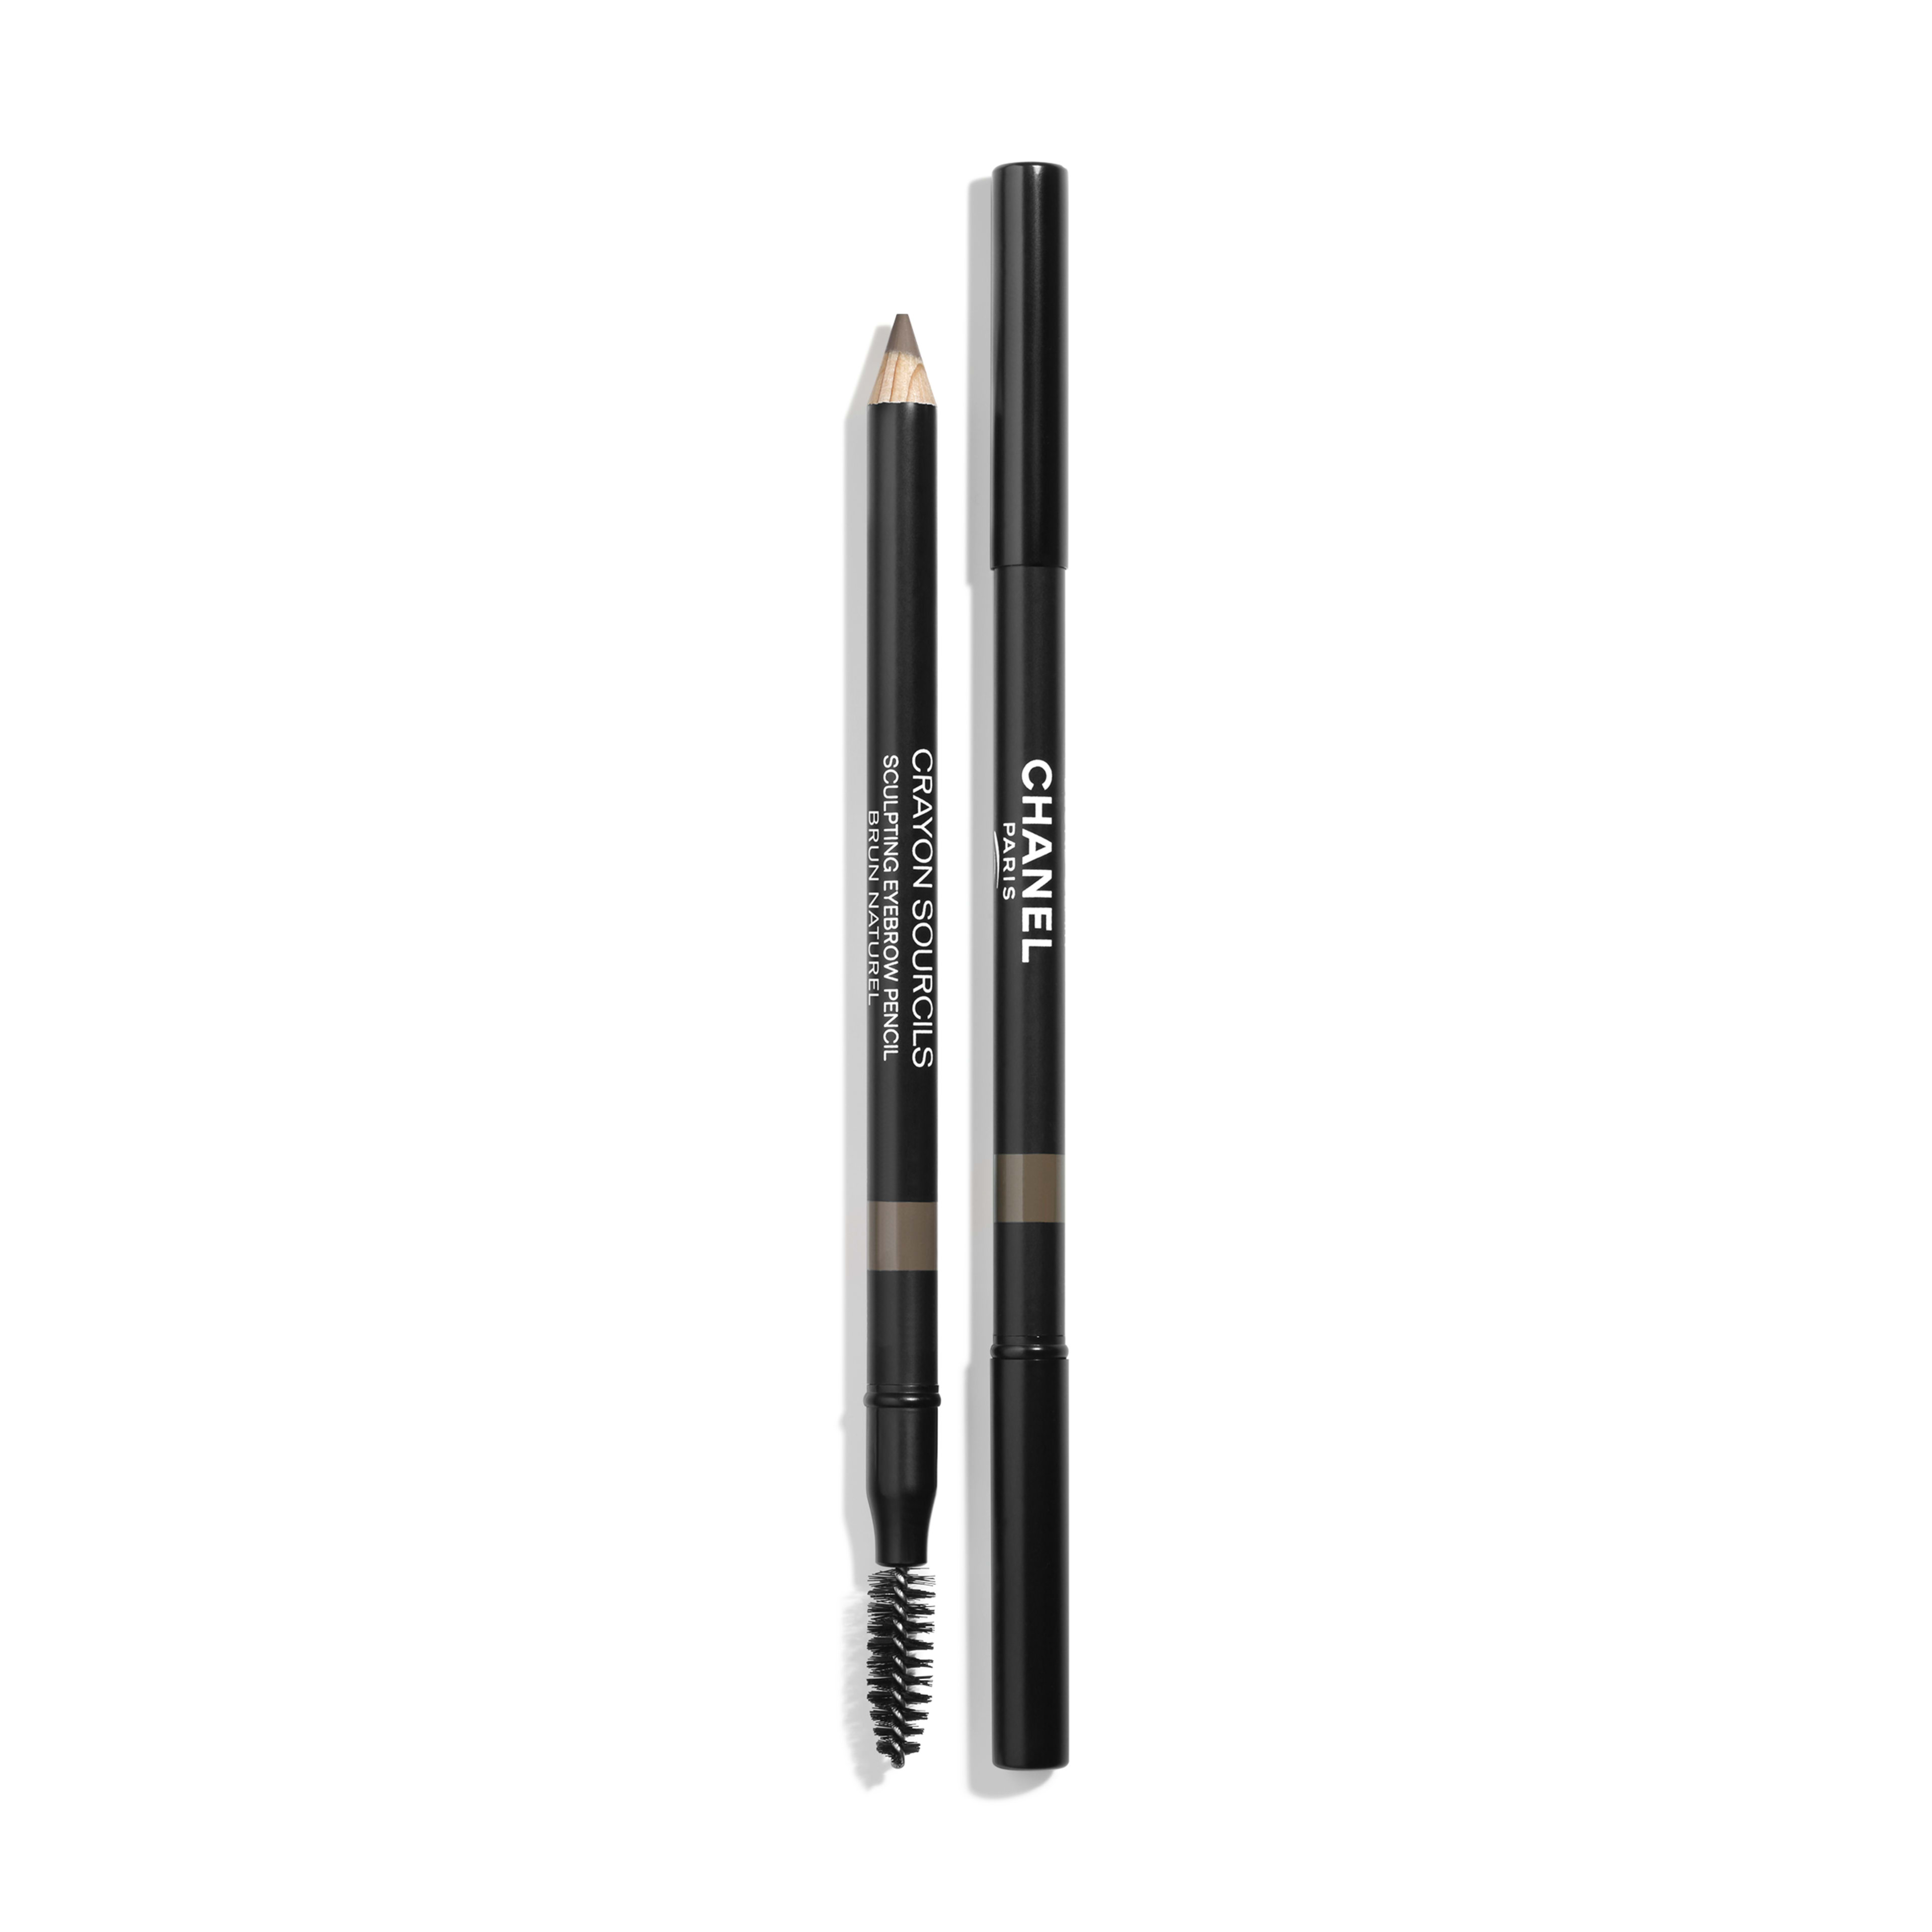 CRAYON SOURCILS - makeup - 0.03OZ. -                                                            default view - see full sized version